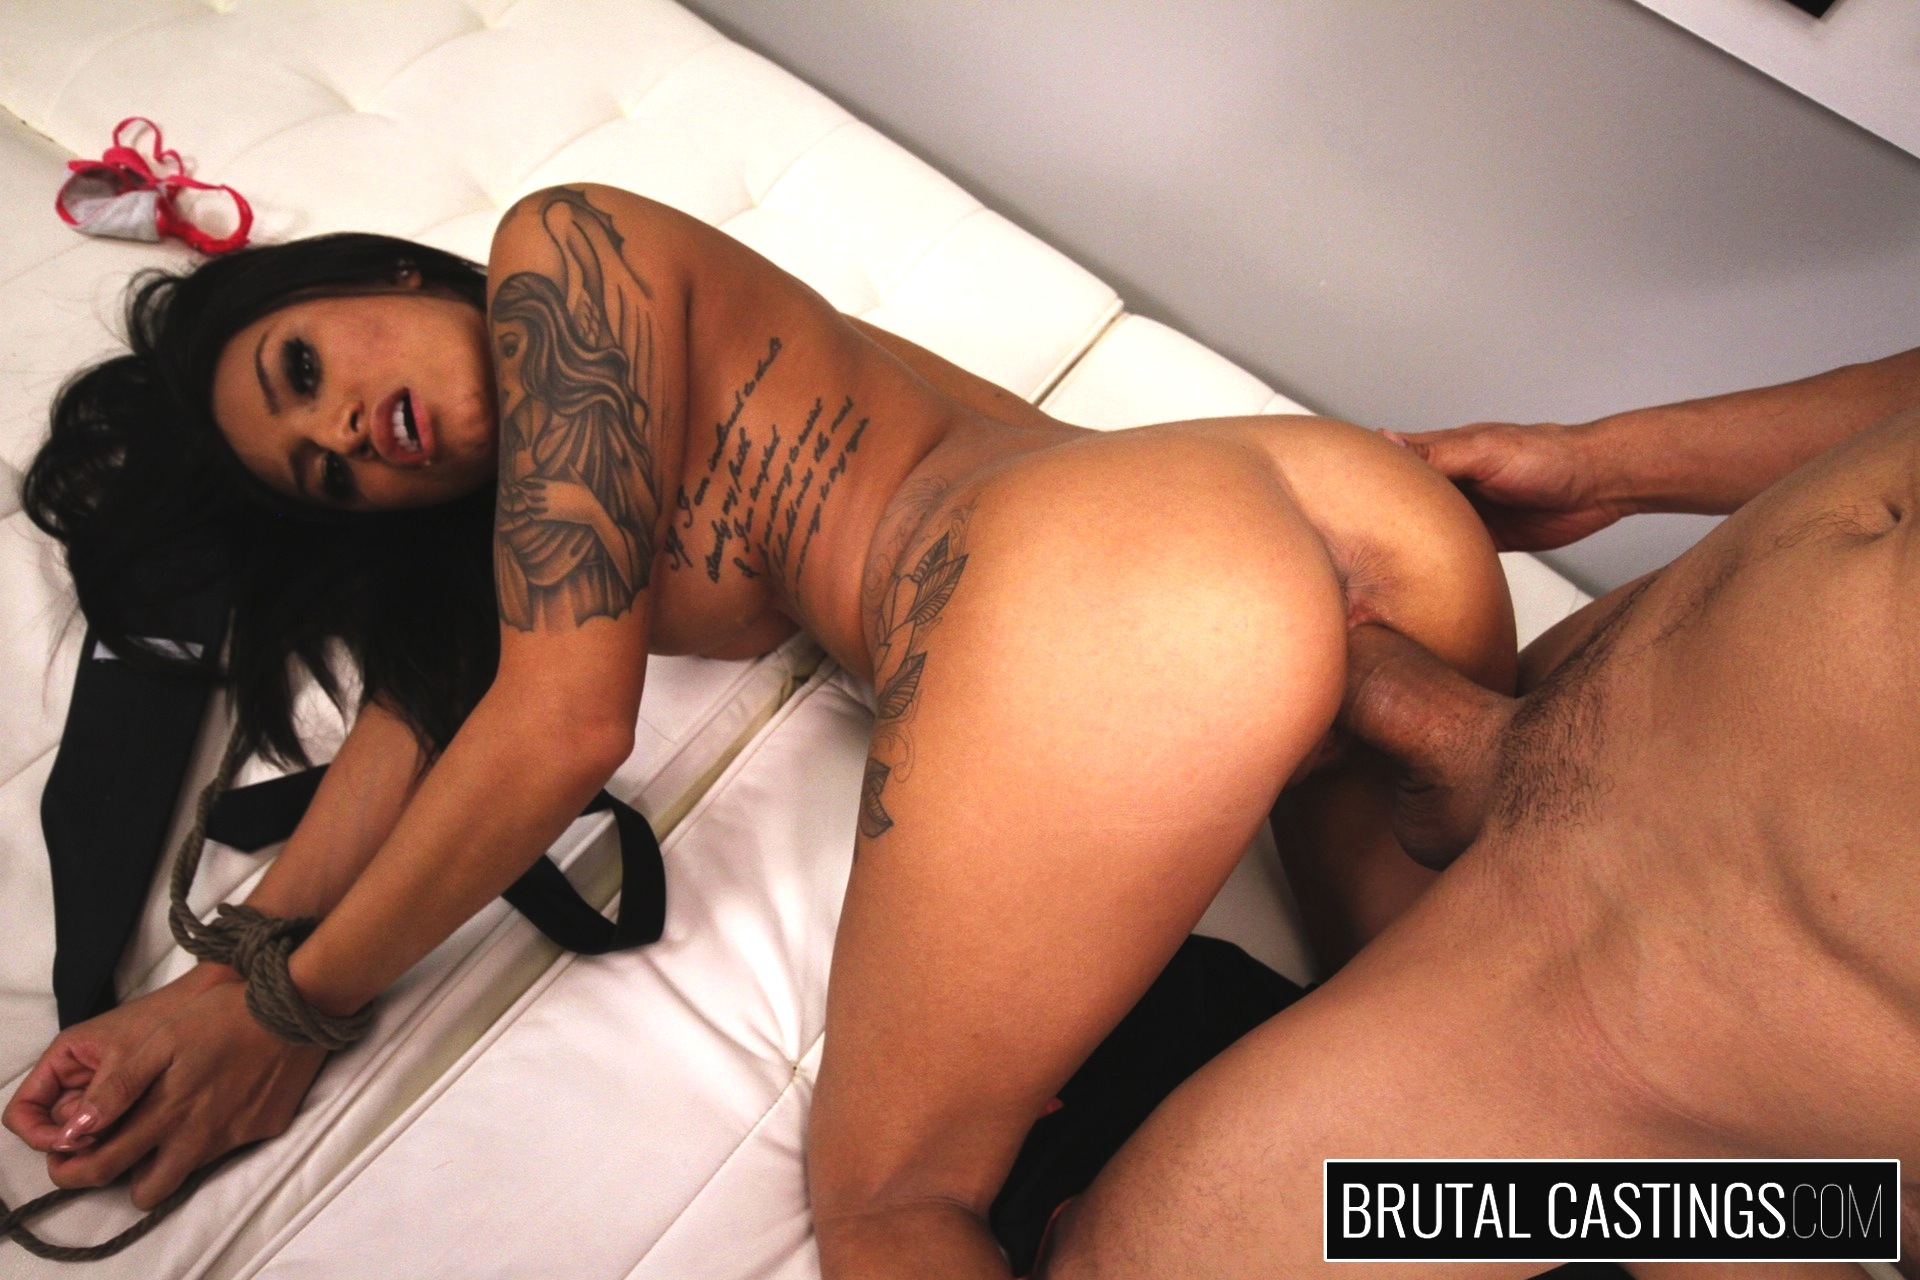 Bdsm casting couch xxx with natalia mendez. Natalia Mendez, a young exciting Latina, dreams of becoming a supermodel with Teen Castings. She'll do anything for a contract. She'll even endure BDSM, domination, rope bondage, deepthroat bj, fingering, squirting, spanking, slapping and rough sex.